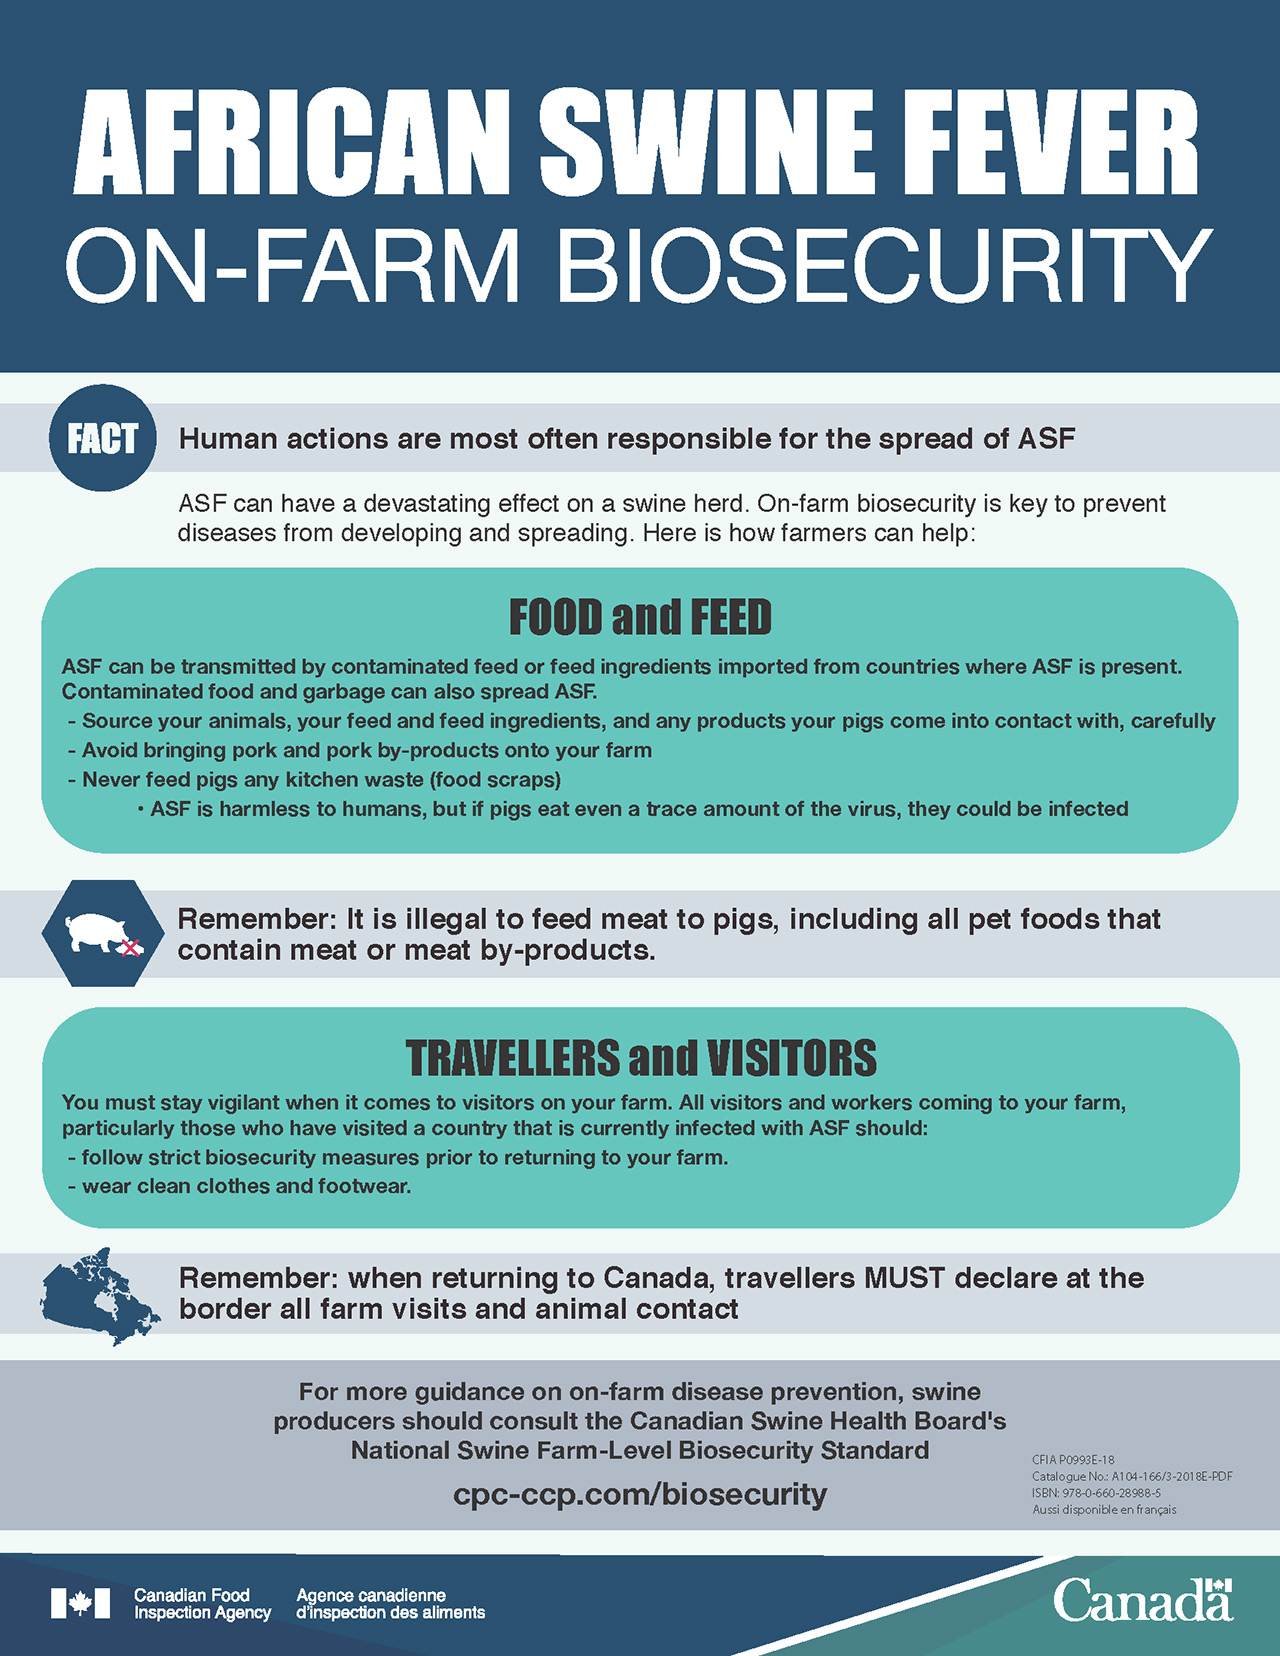 African swine fever on-farm biosecurity - Canadian Food